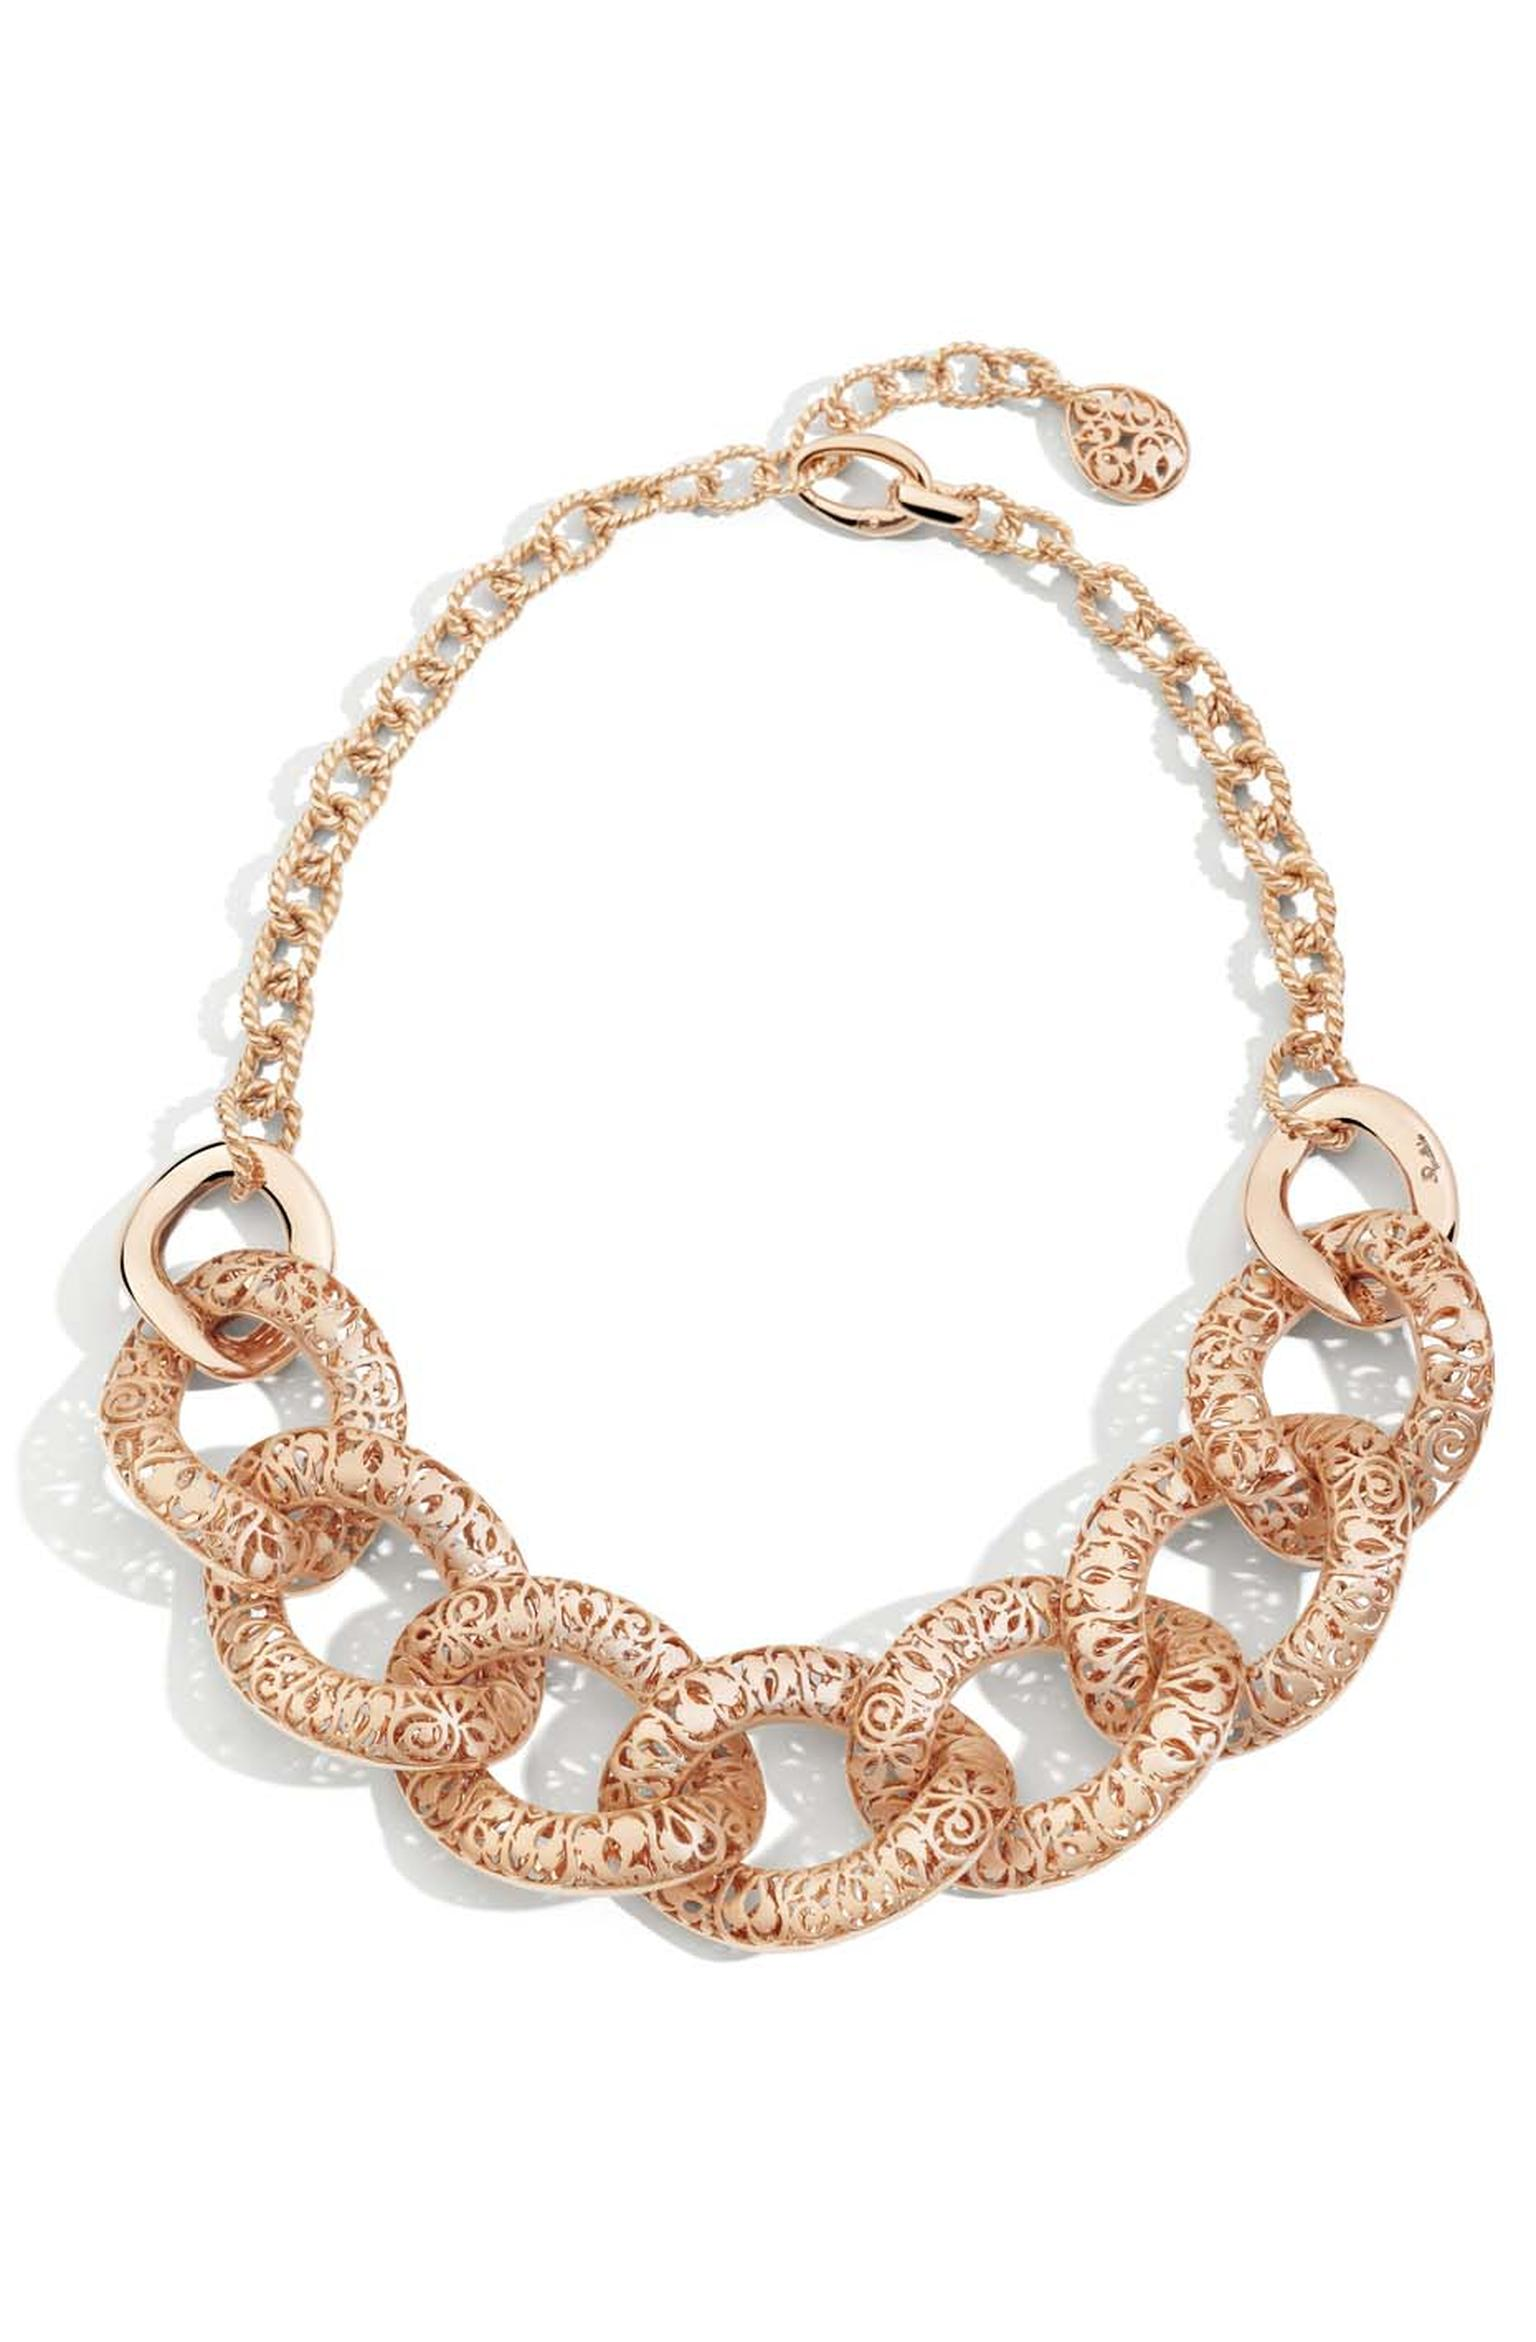 Pomellato Arabesque necklace in polished and matte rose gold (£28,500).